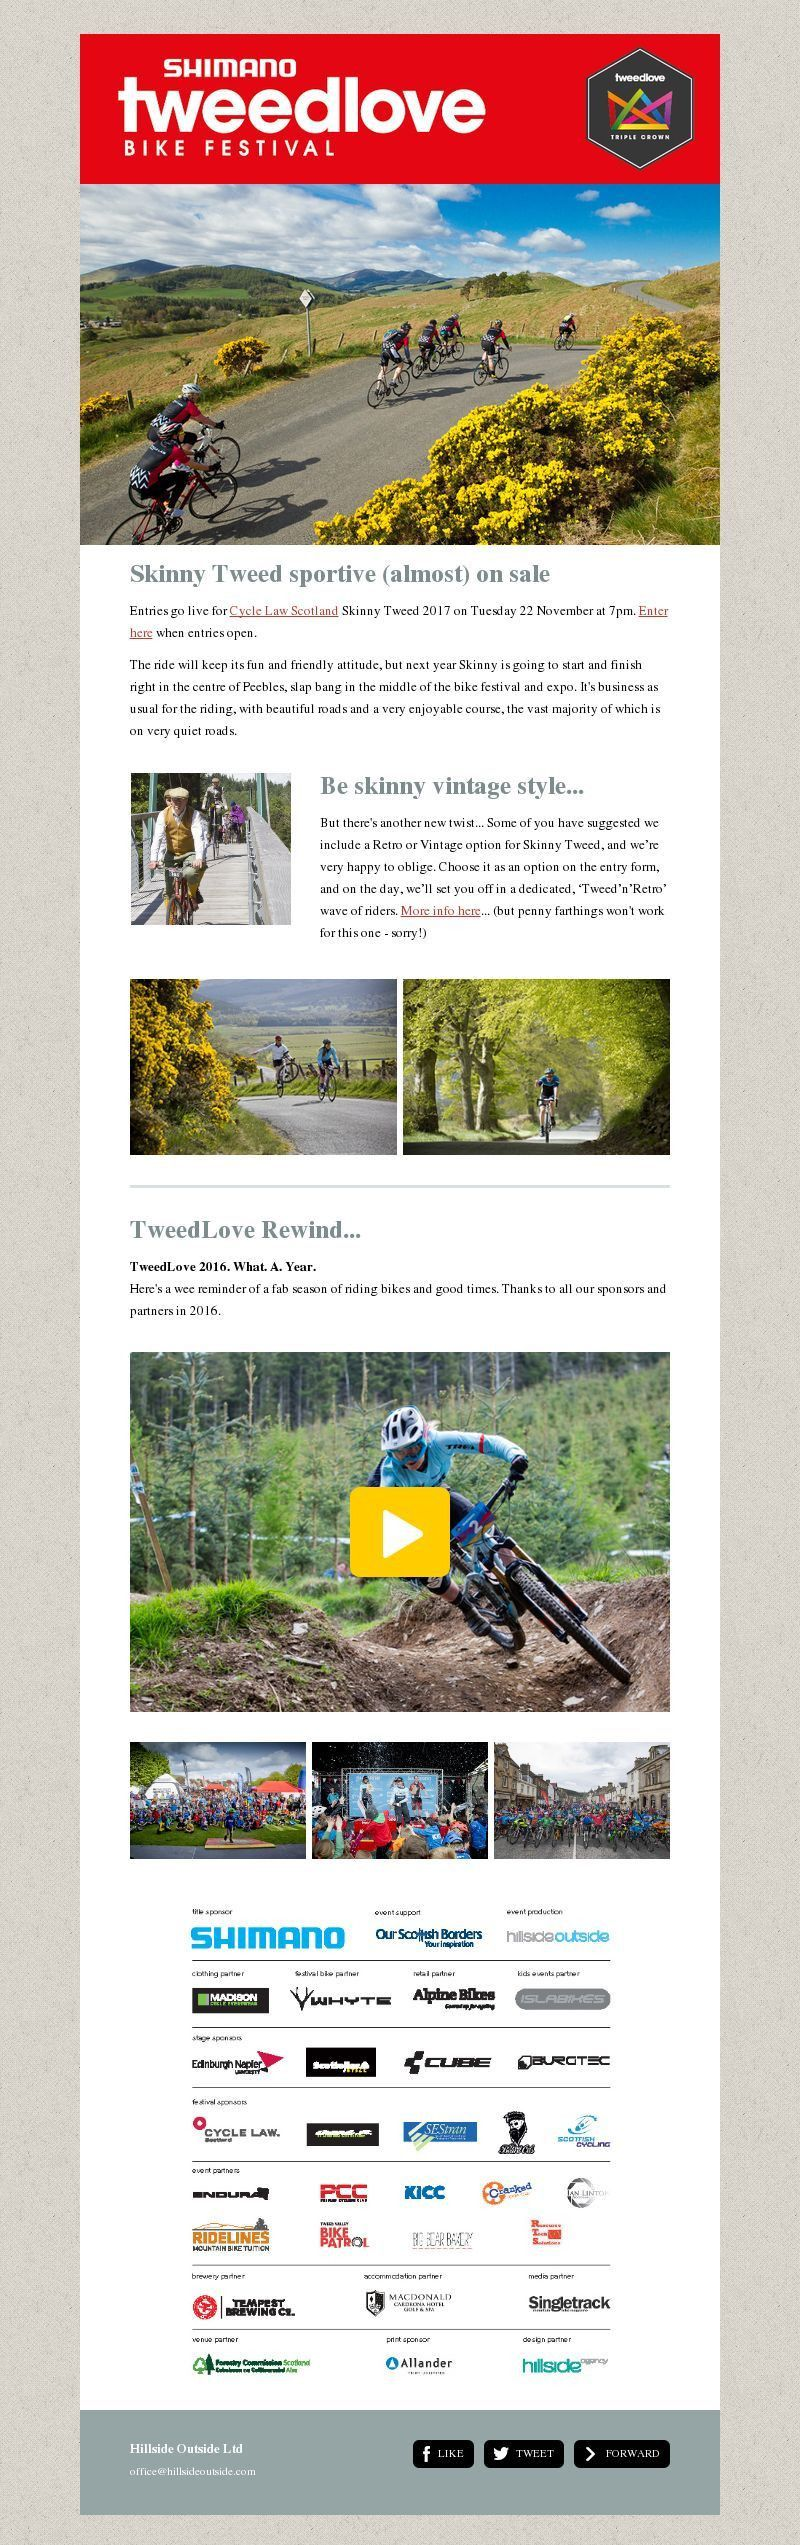 Events Newsletter Design Gallery and Examples | MailerLite